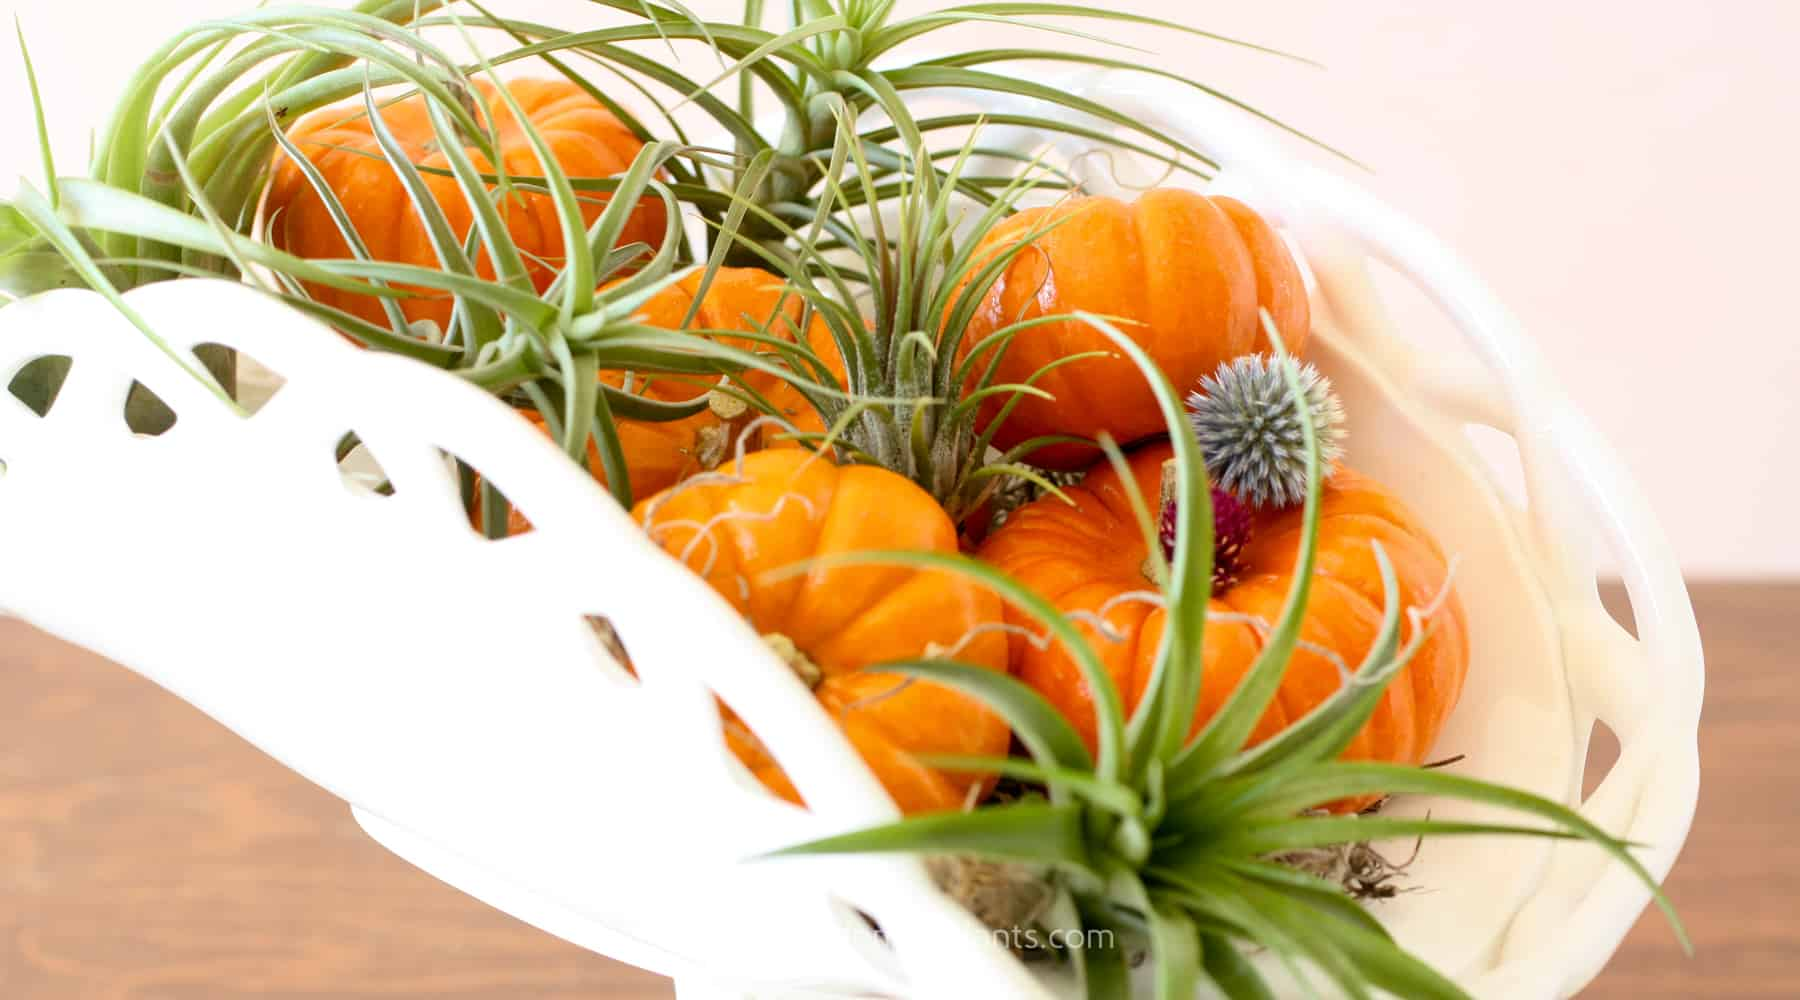 fall decor - air plants and pumpkins